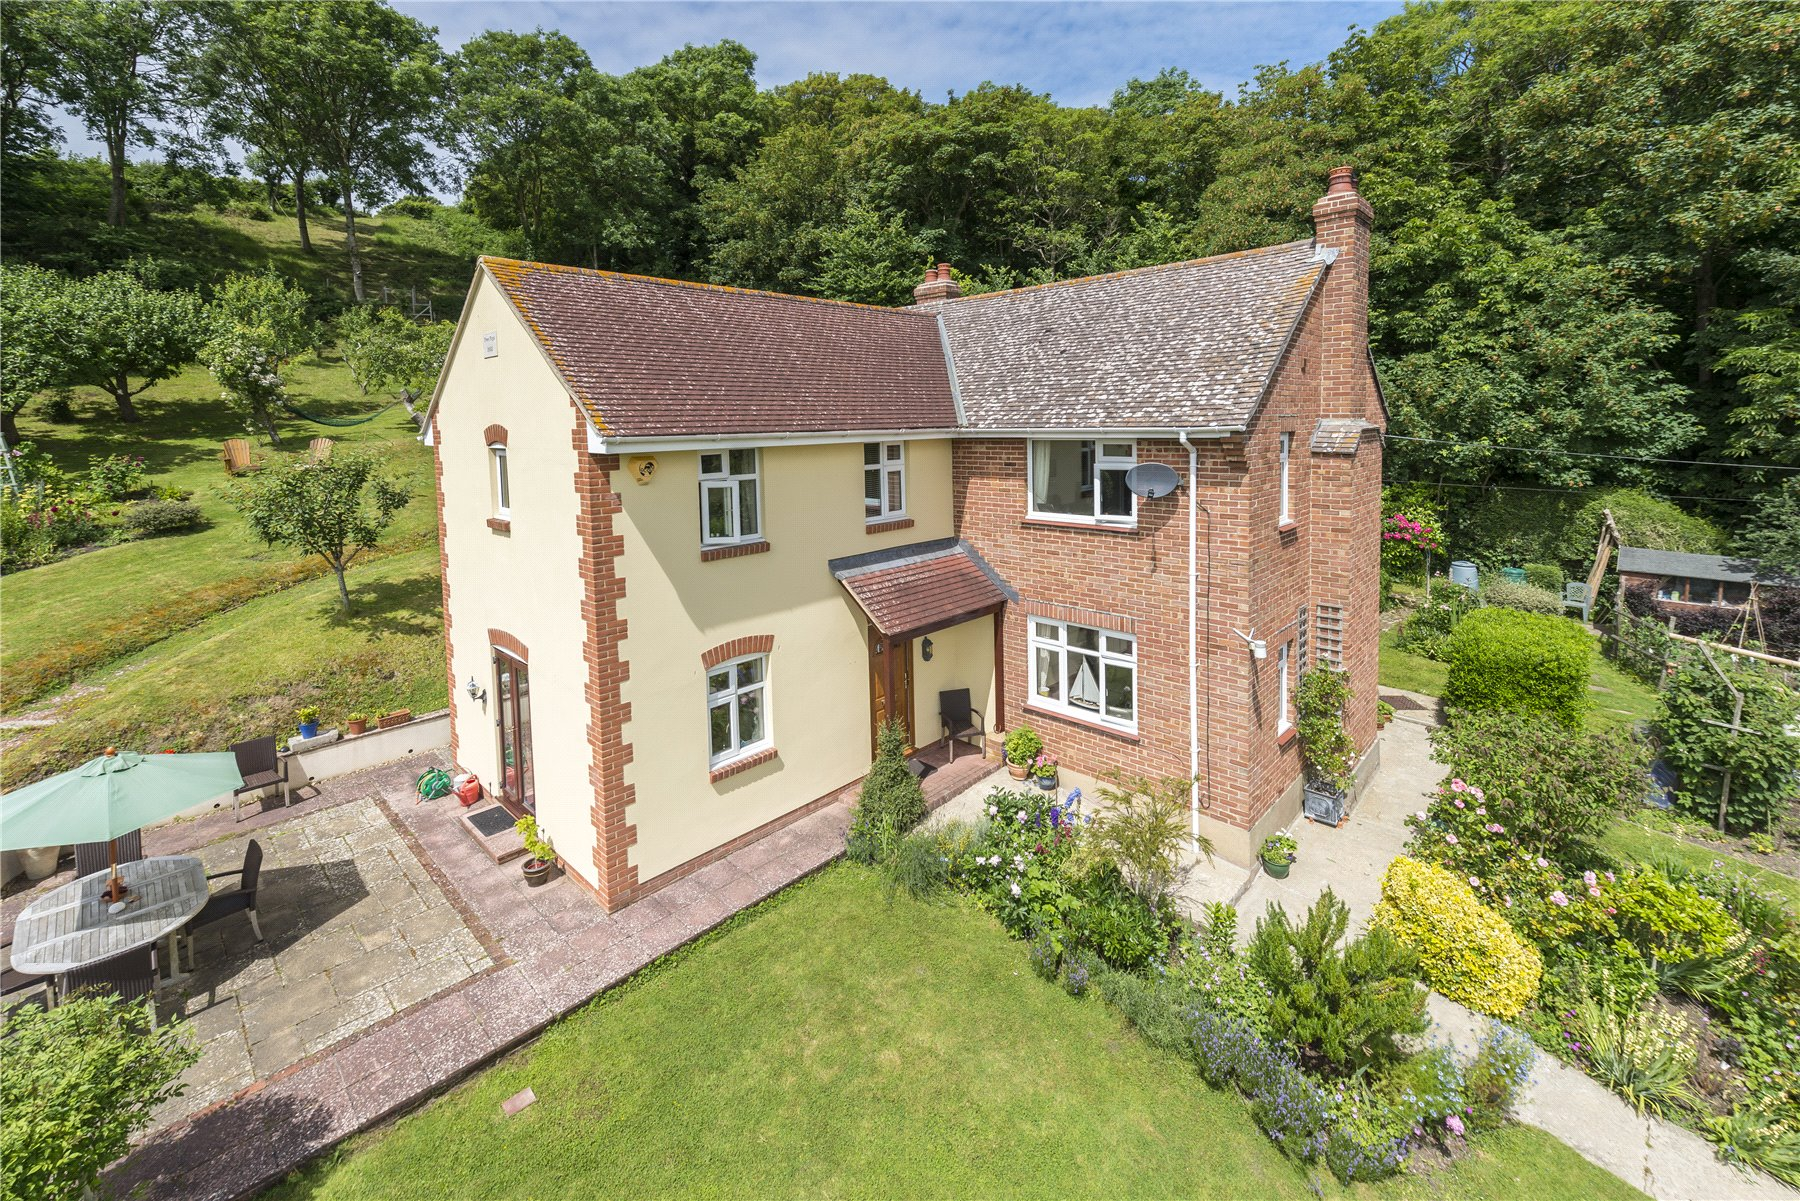 5 Bedroom Detached House For Sale In Weymouth